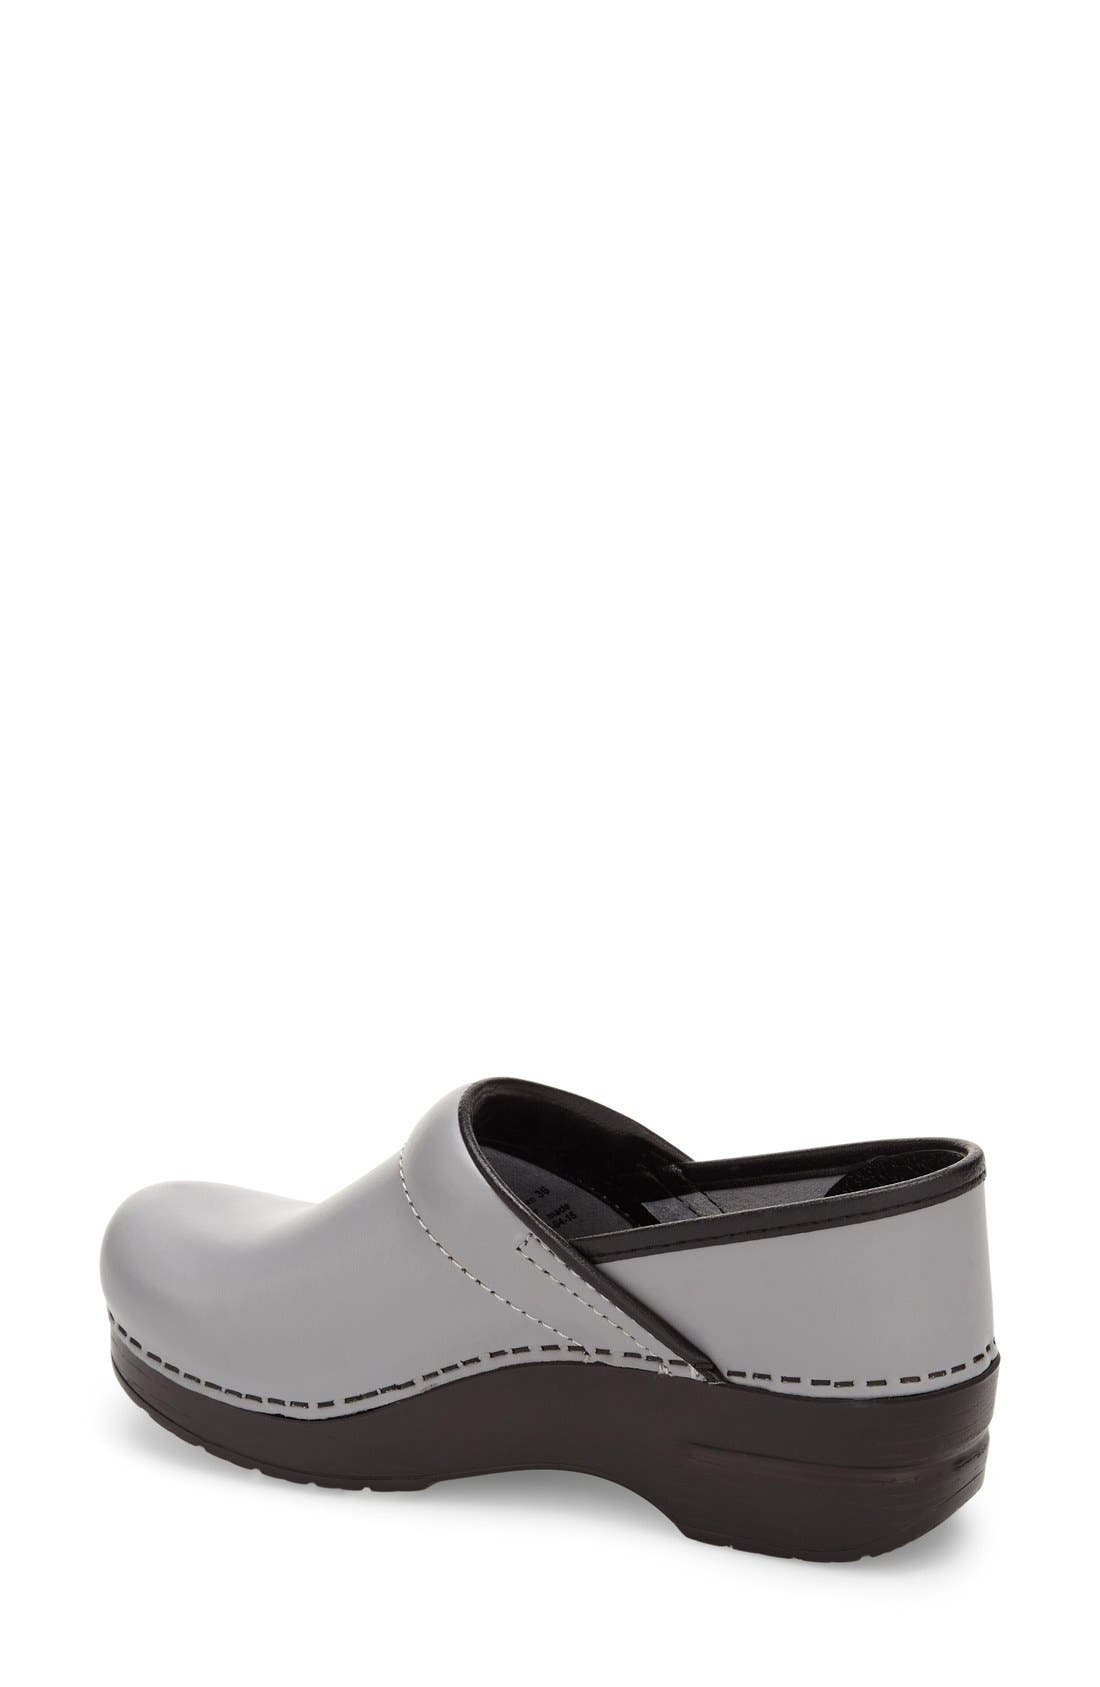 Alternate Image 2  - Dansko 'Pro' Clog (Women)